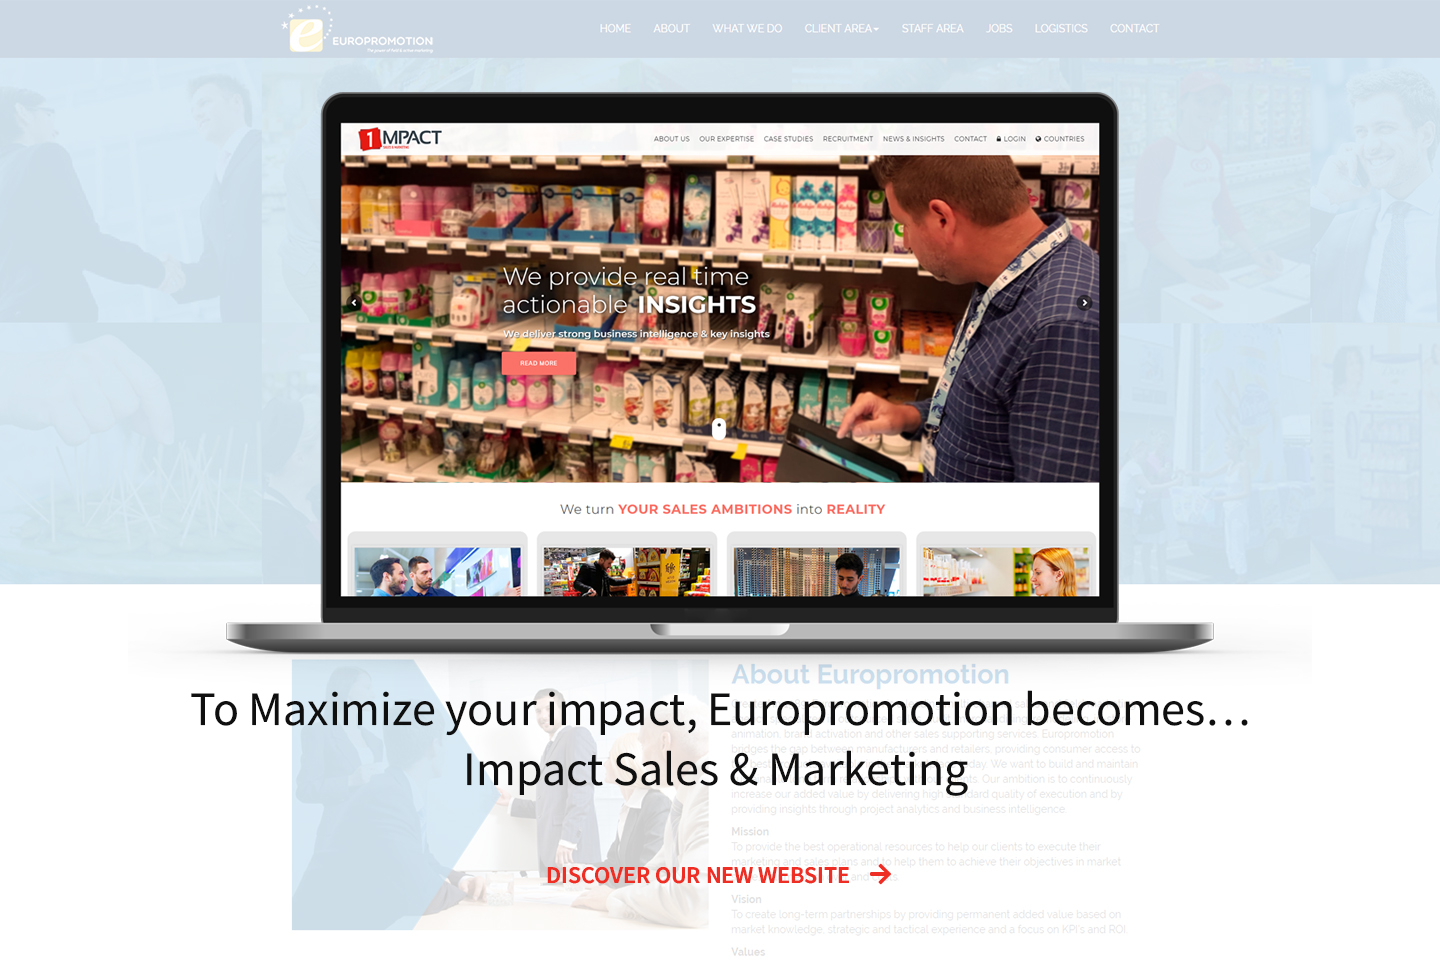 Europromotion is changing its name to become the Belgian counterpart of Impact Sales & Marketing.